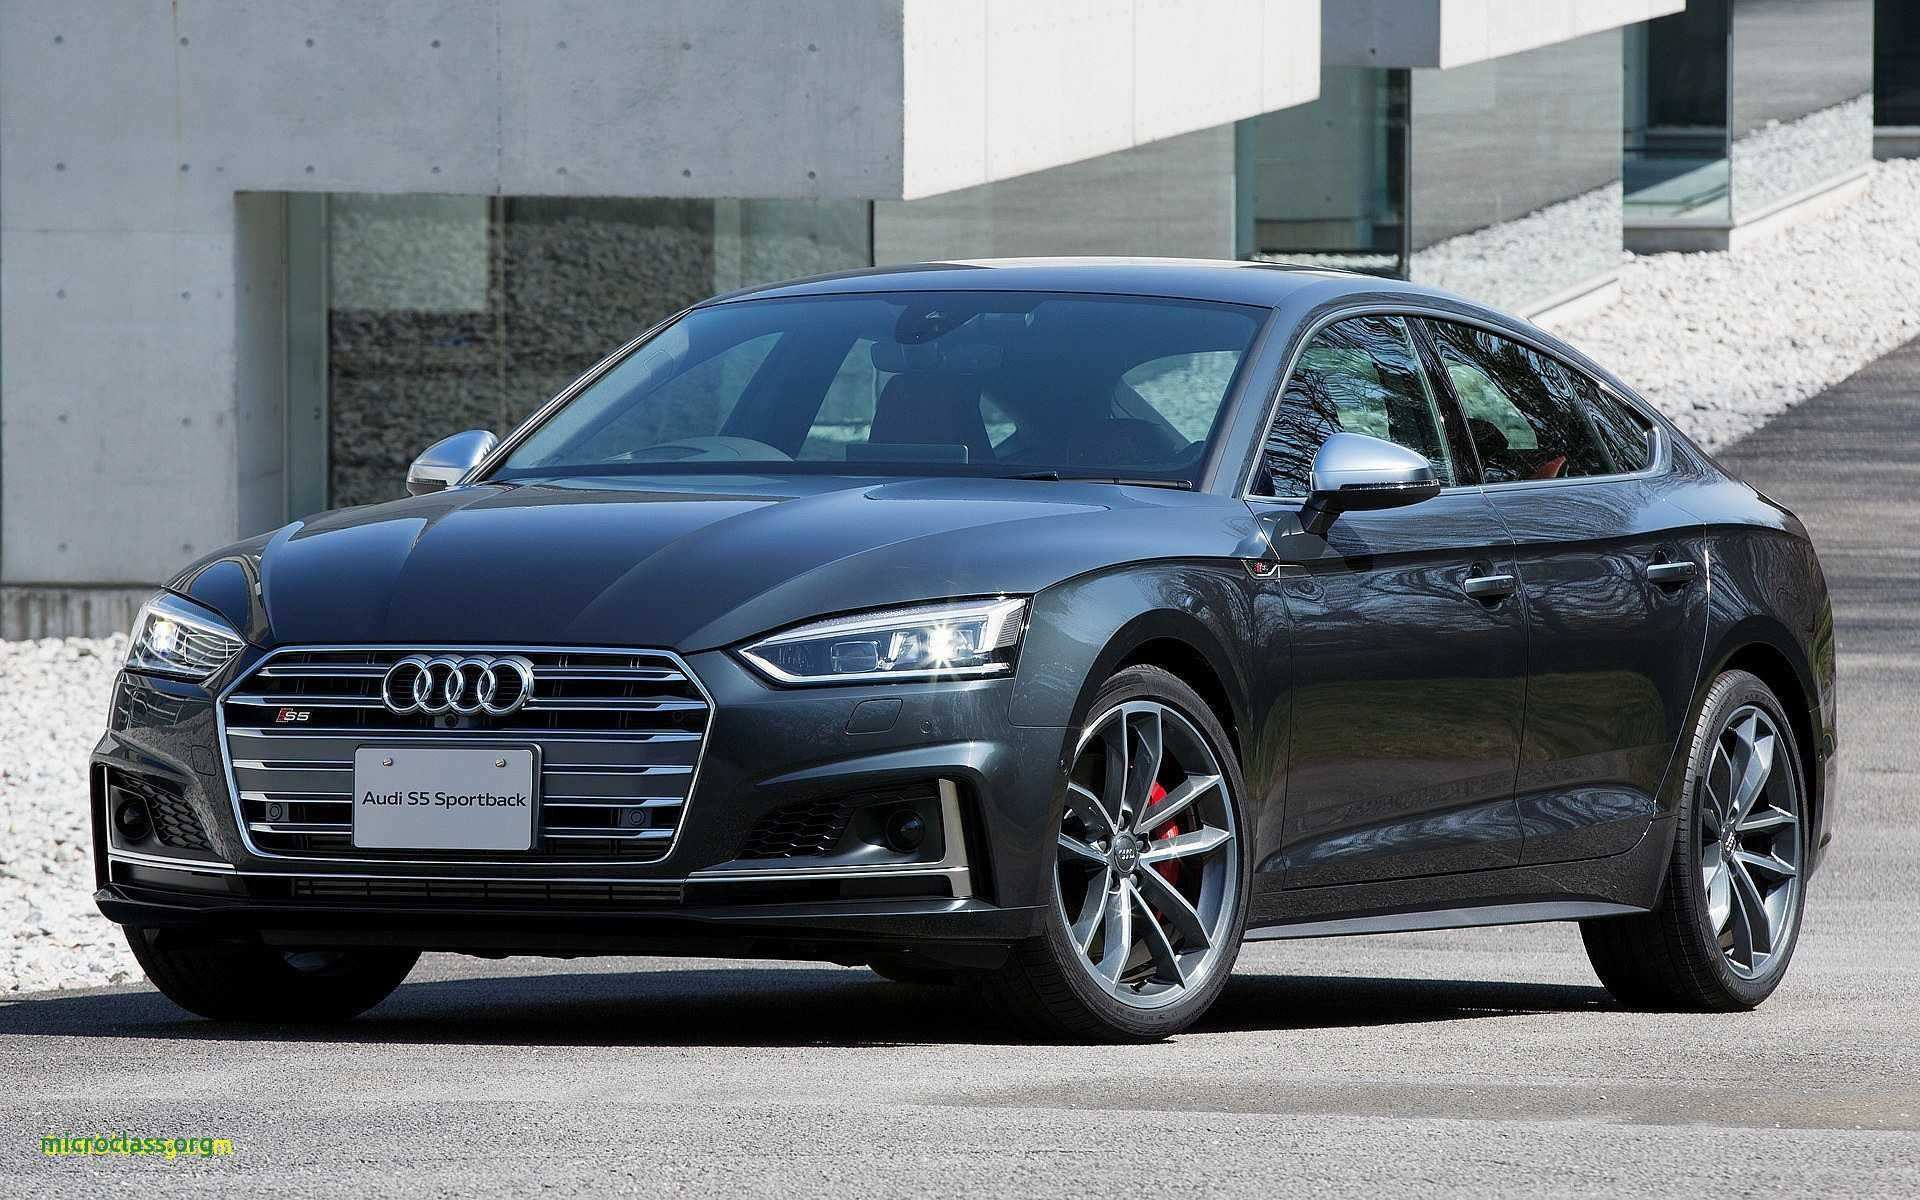 68 Great 2020 Audi A5s Research New with 2020 Audi A5s